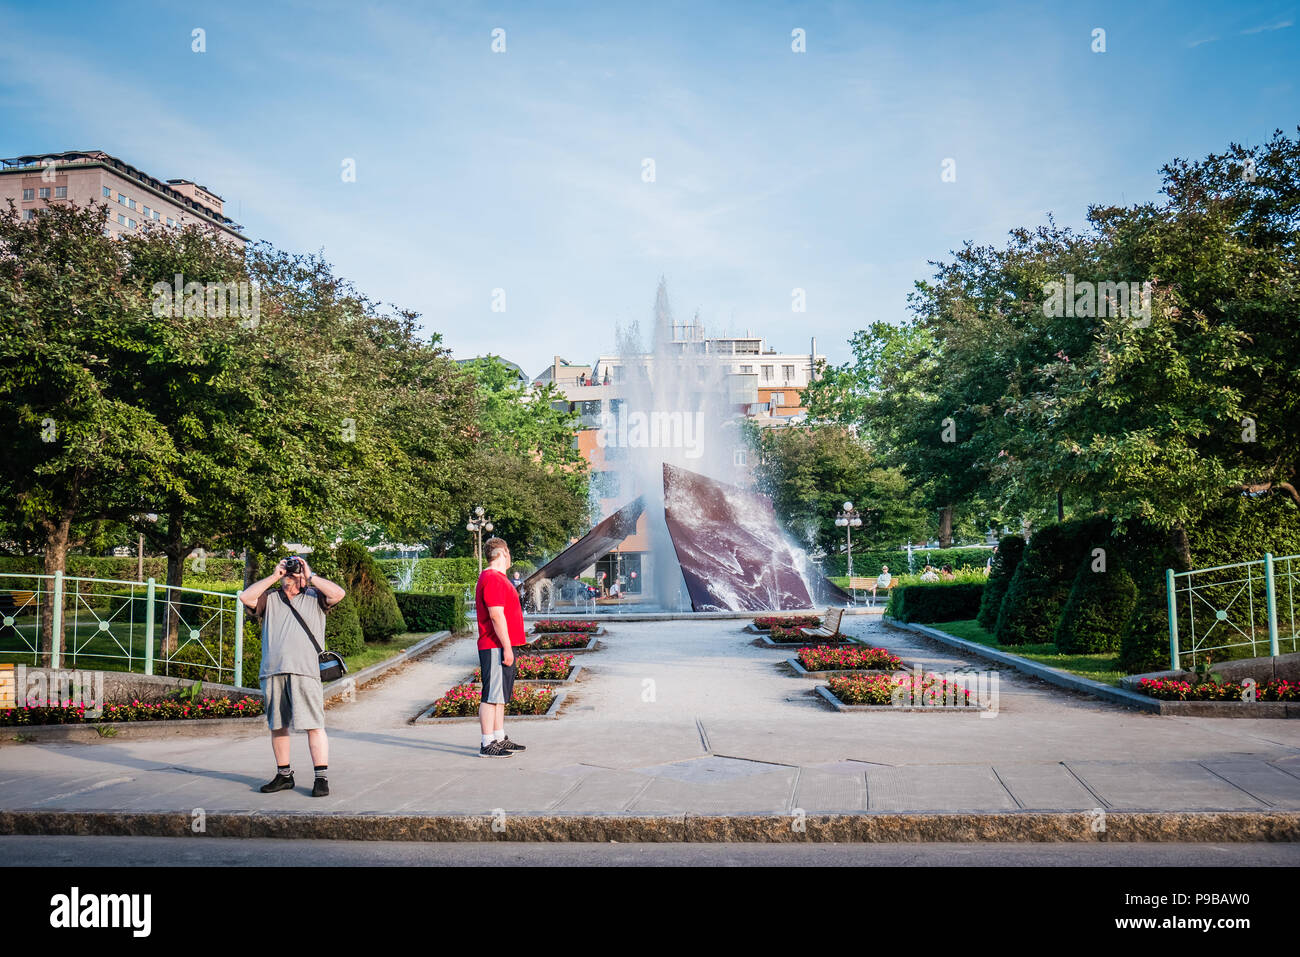 outdoor fountain in front of palais station quebec city canada - Stock Image